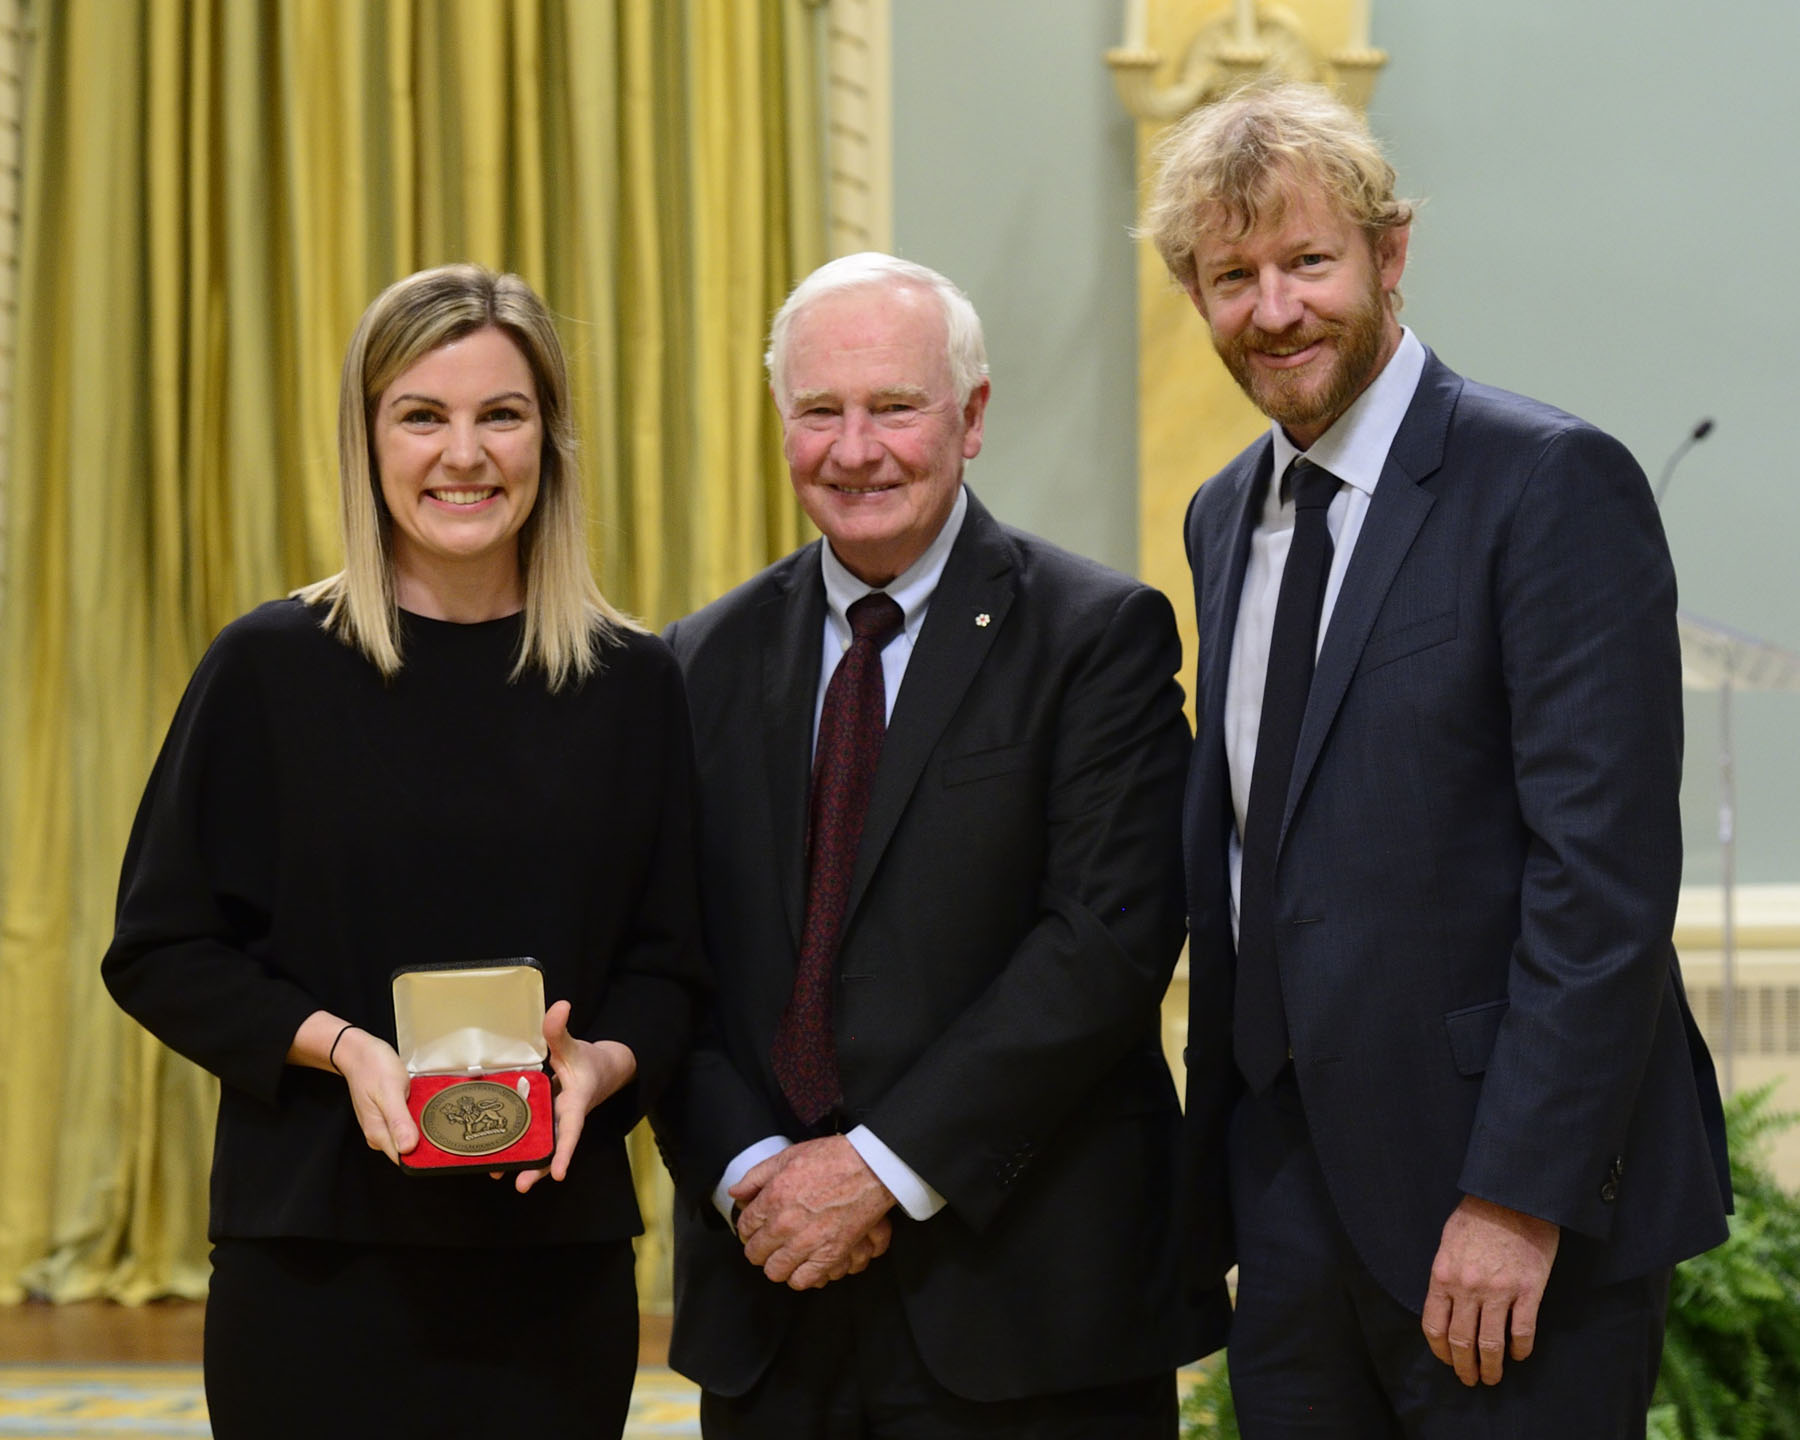 "His Excellency presented the 2016 Governor General's Medal in Architecture to Micheal Green Architecture, Vancouver, British Columbia, for the project of the Ronald McDonald House BC & Yukon. It provides a ""home away from home"" for out-of-town families with children receiving medical treatment in Vancouver."